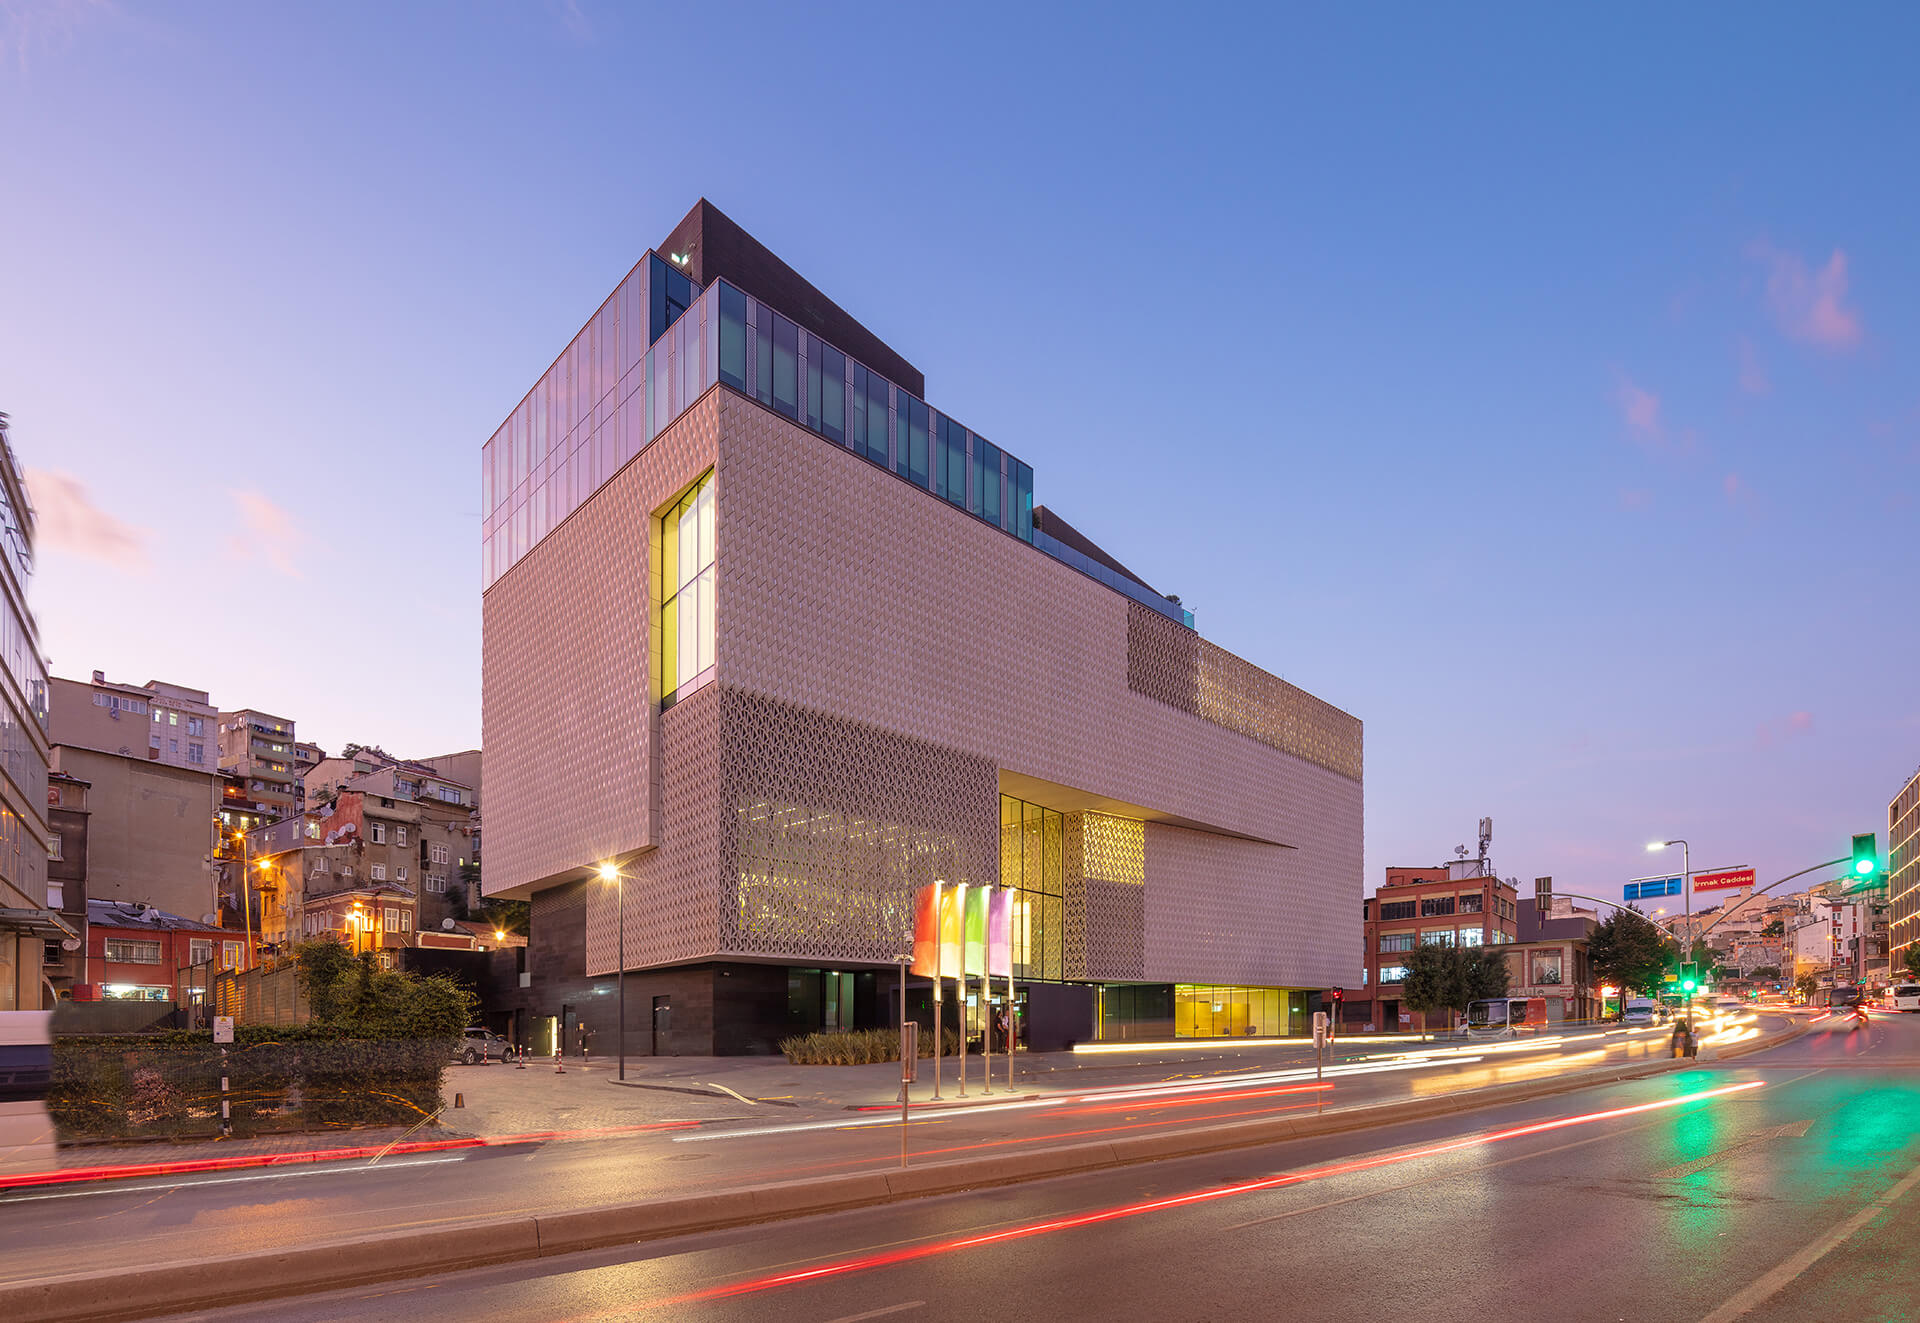 Night view of the building | Arter Contemporary Art Museum by Grimshaw Architects | STIRworld